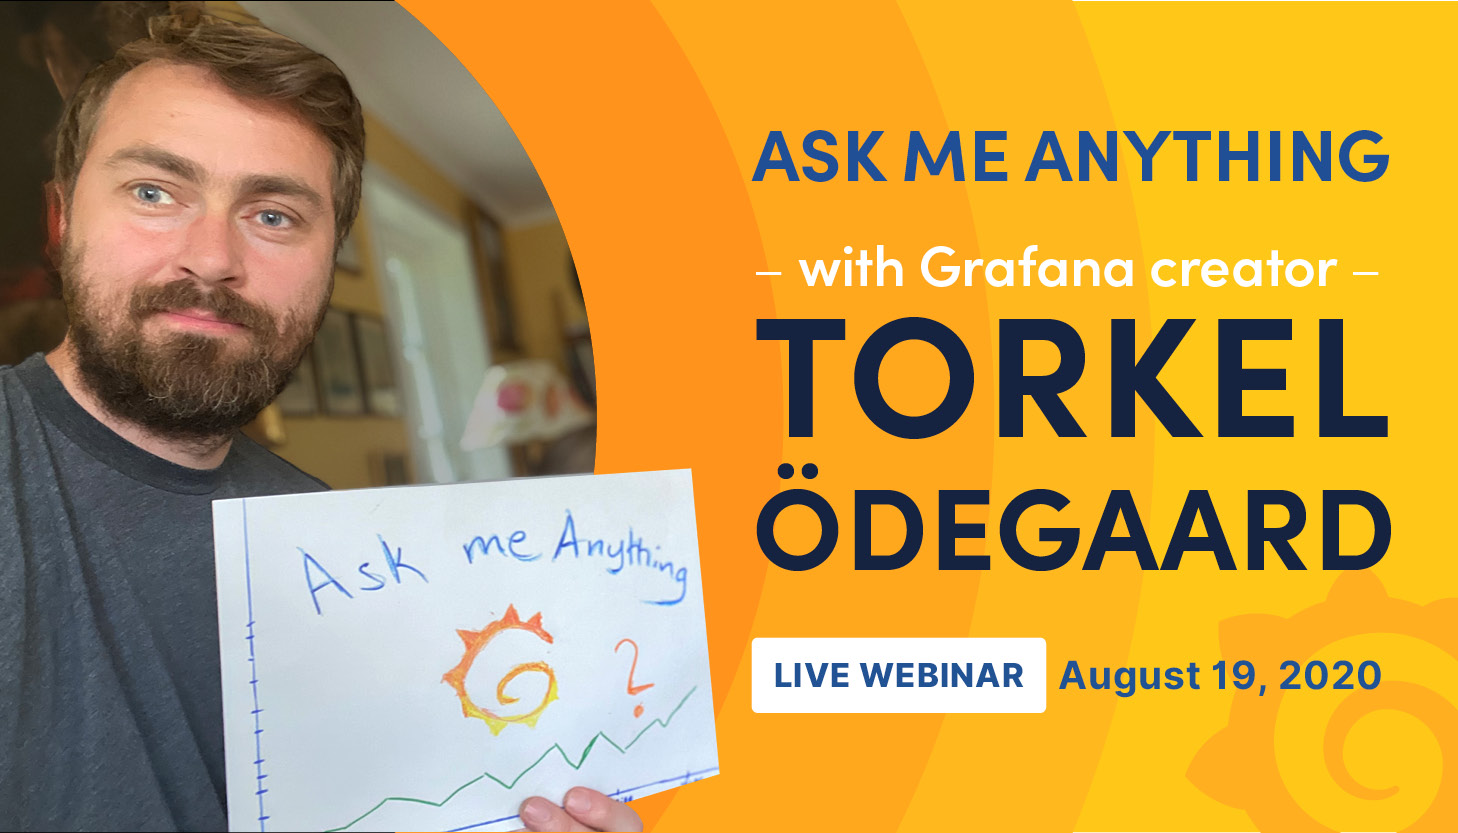 AMA session with Torkel